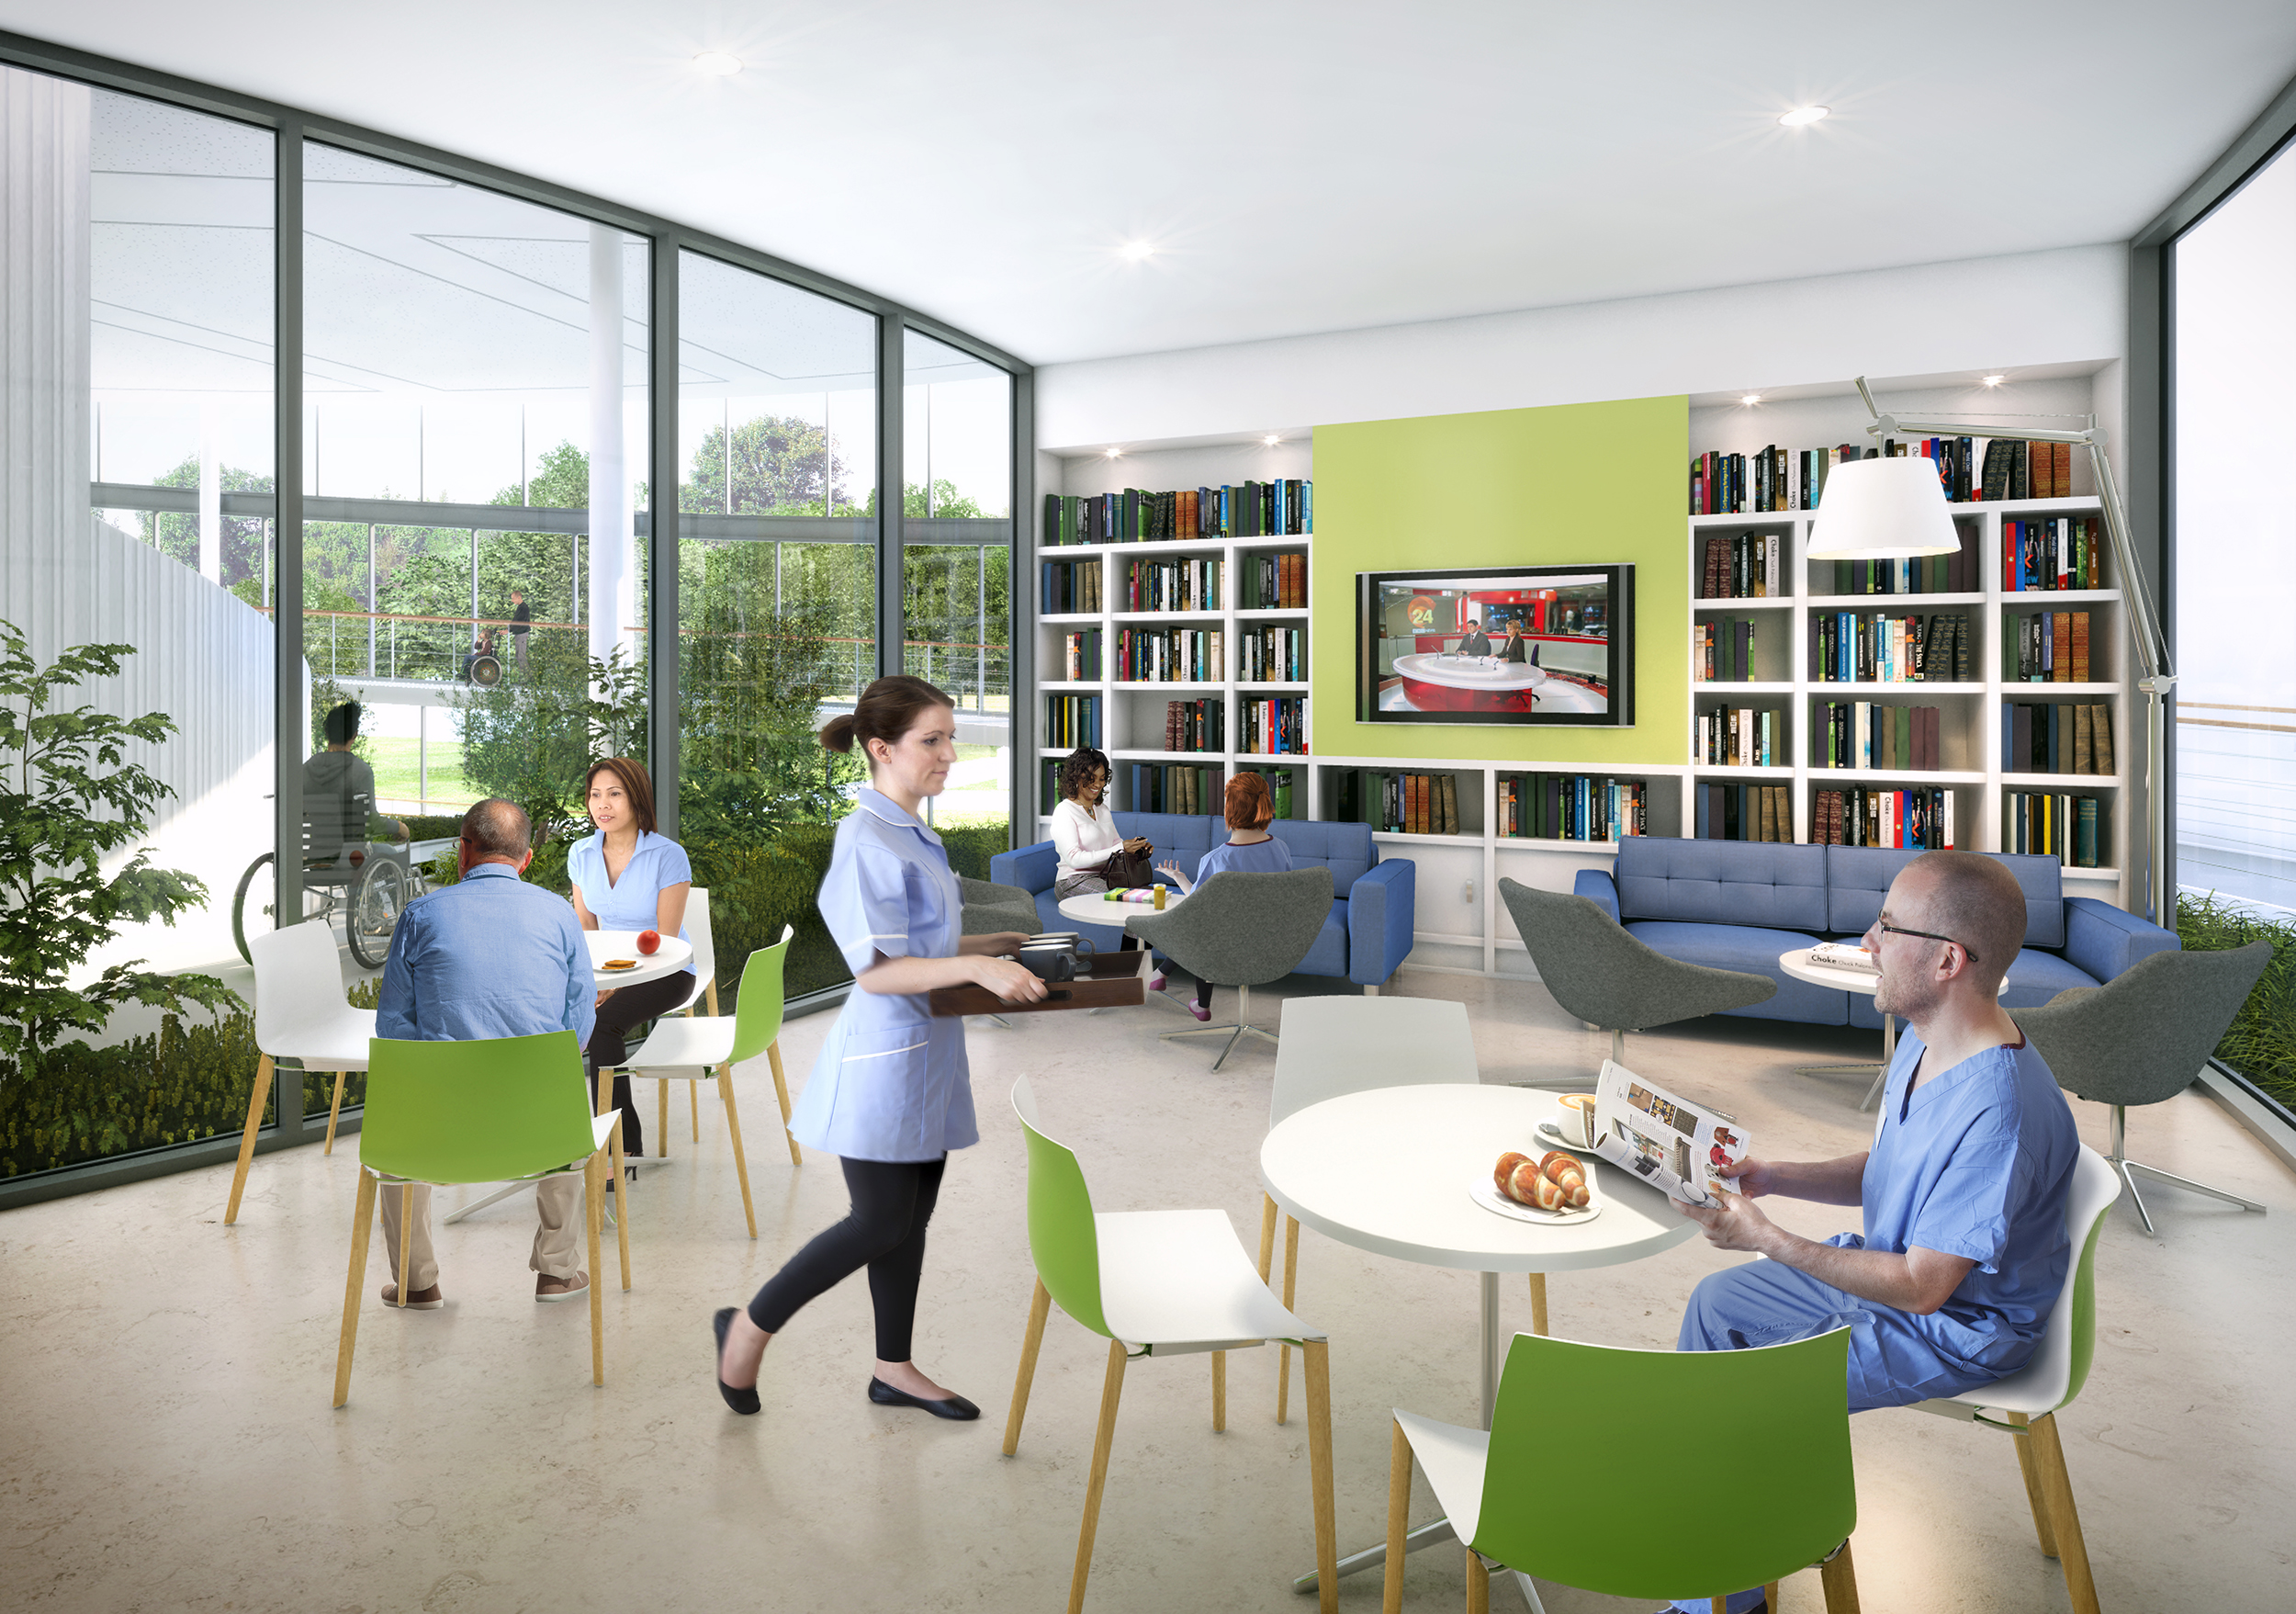 CGI-hospital-healthcare-staff-lounge.jpg